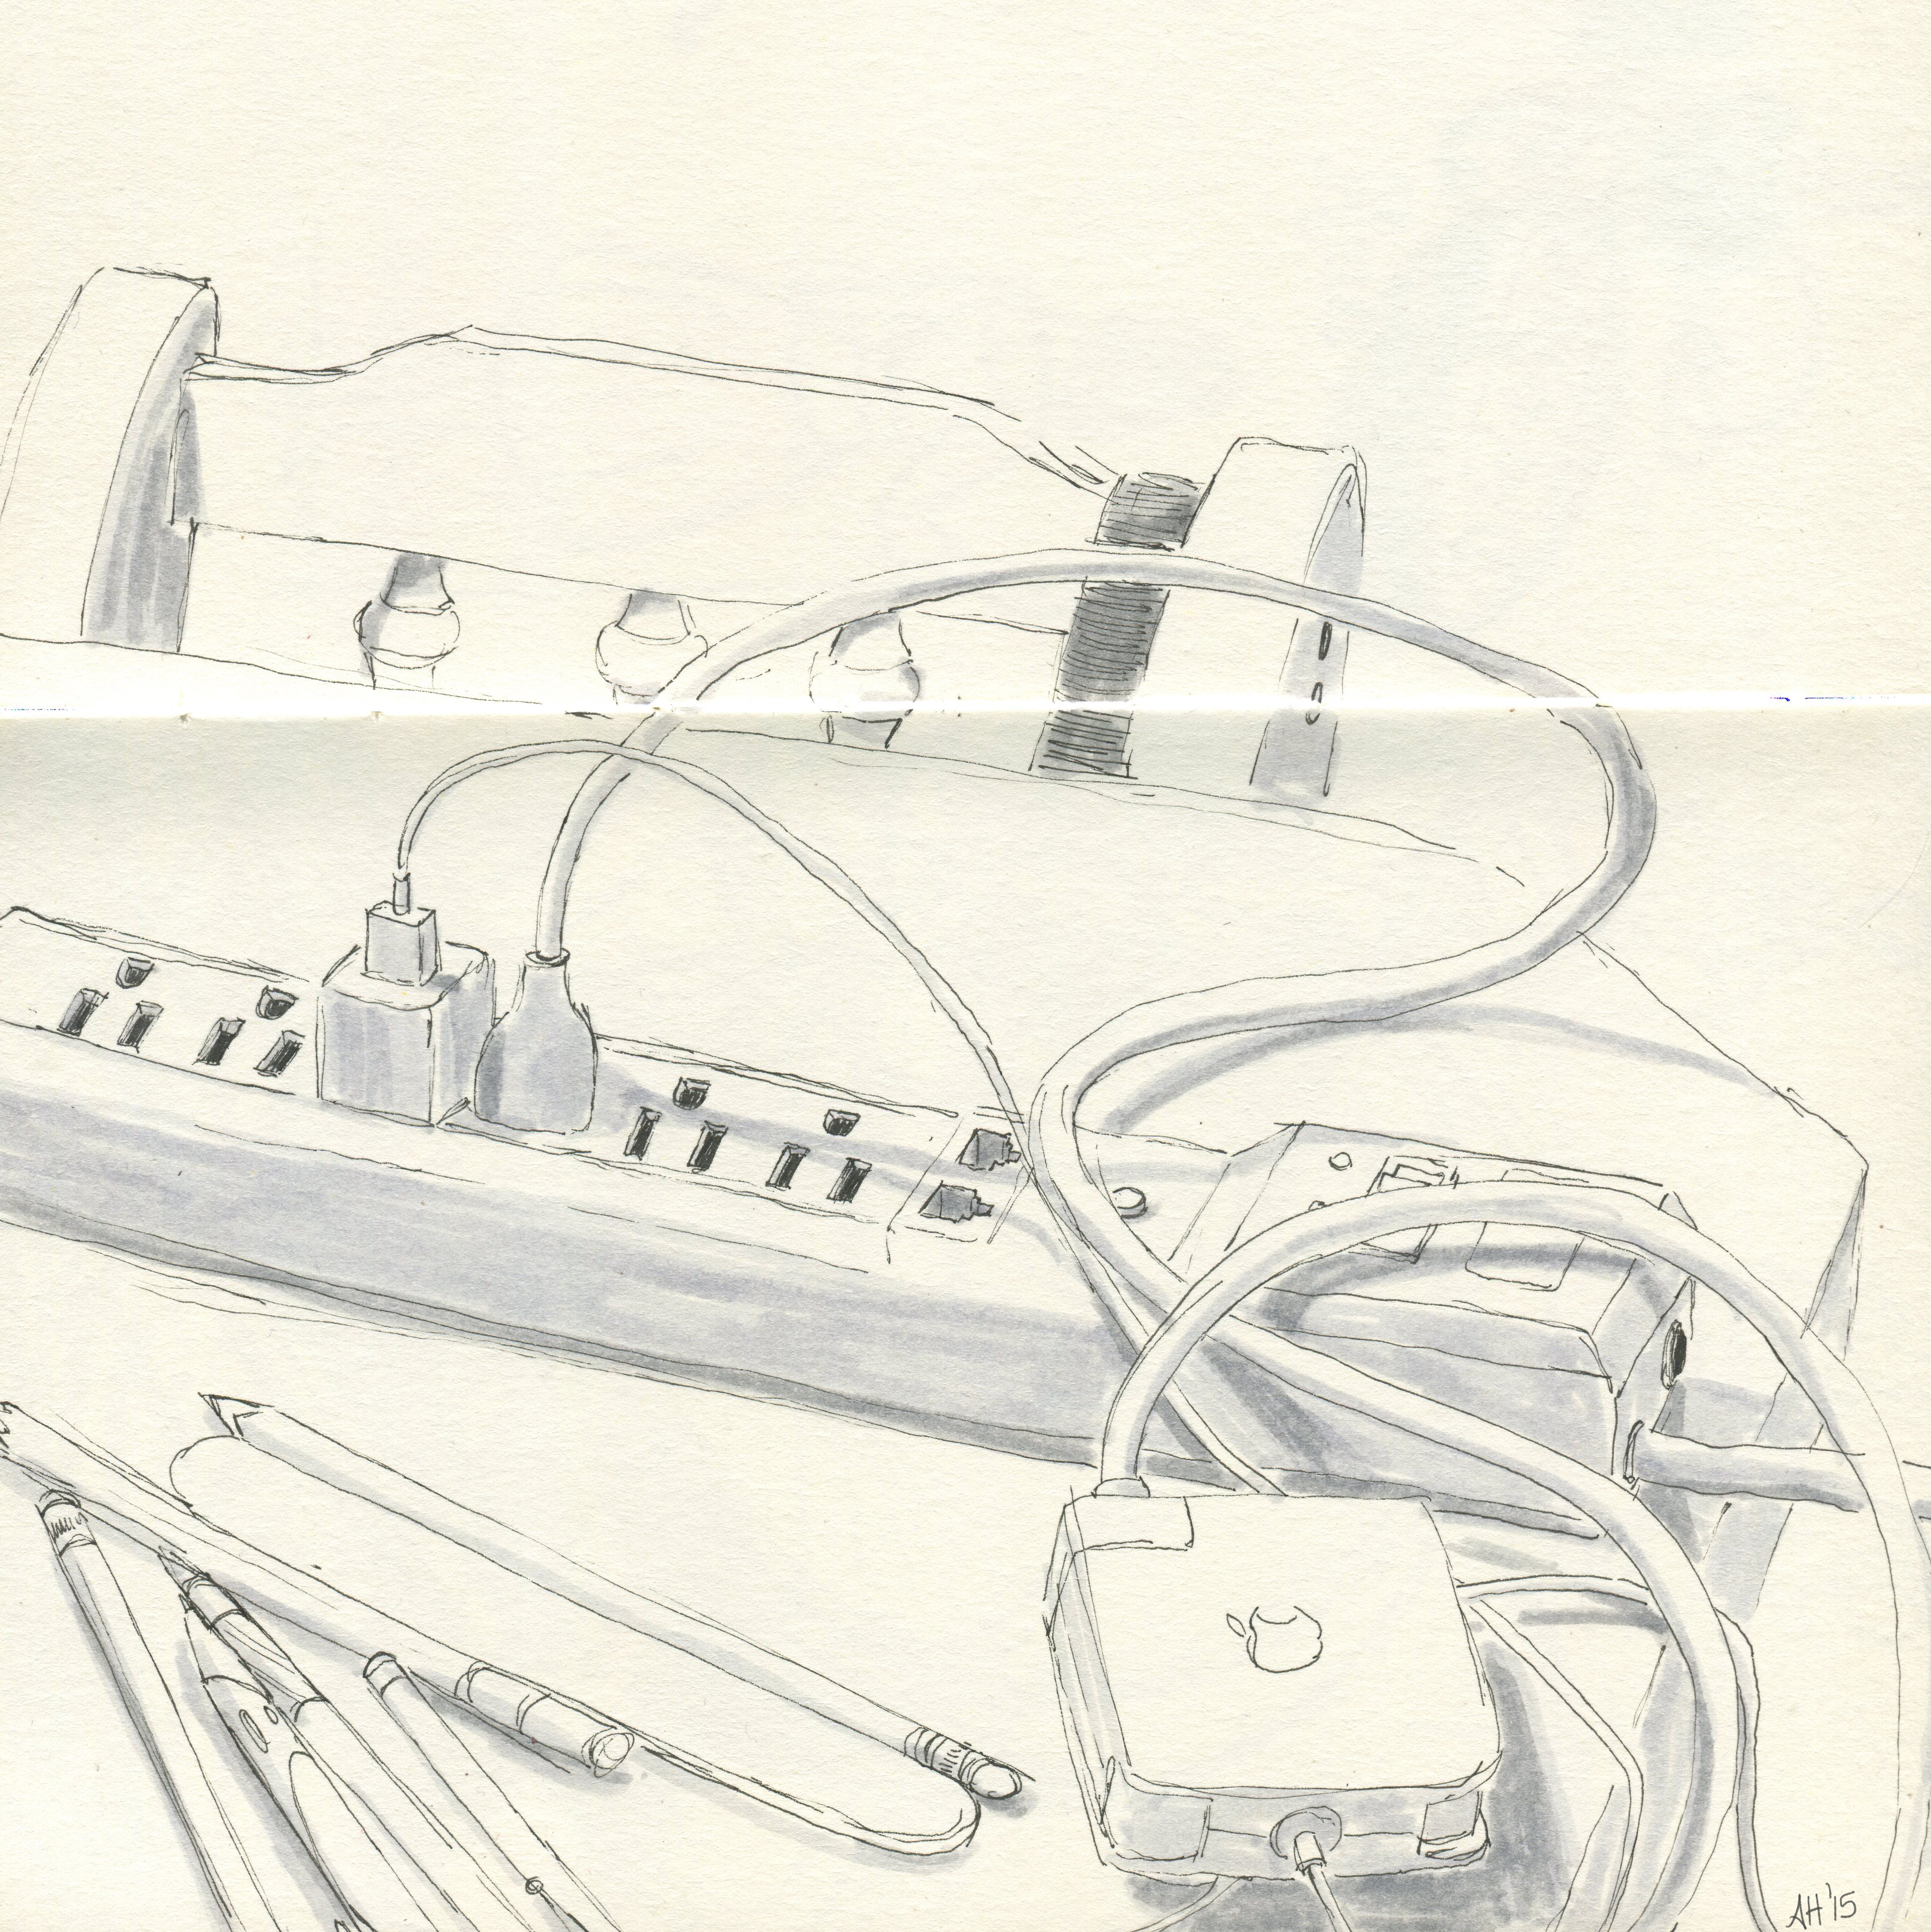 a macbook charger plugged into surge protector which sits on a kitchen table, sketched by alleanna harris